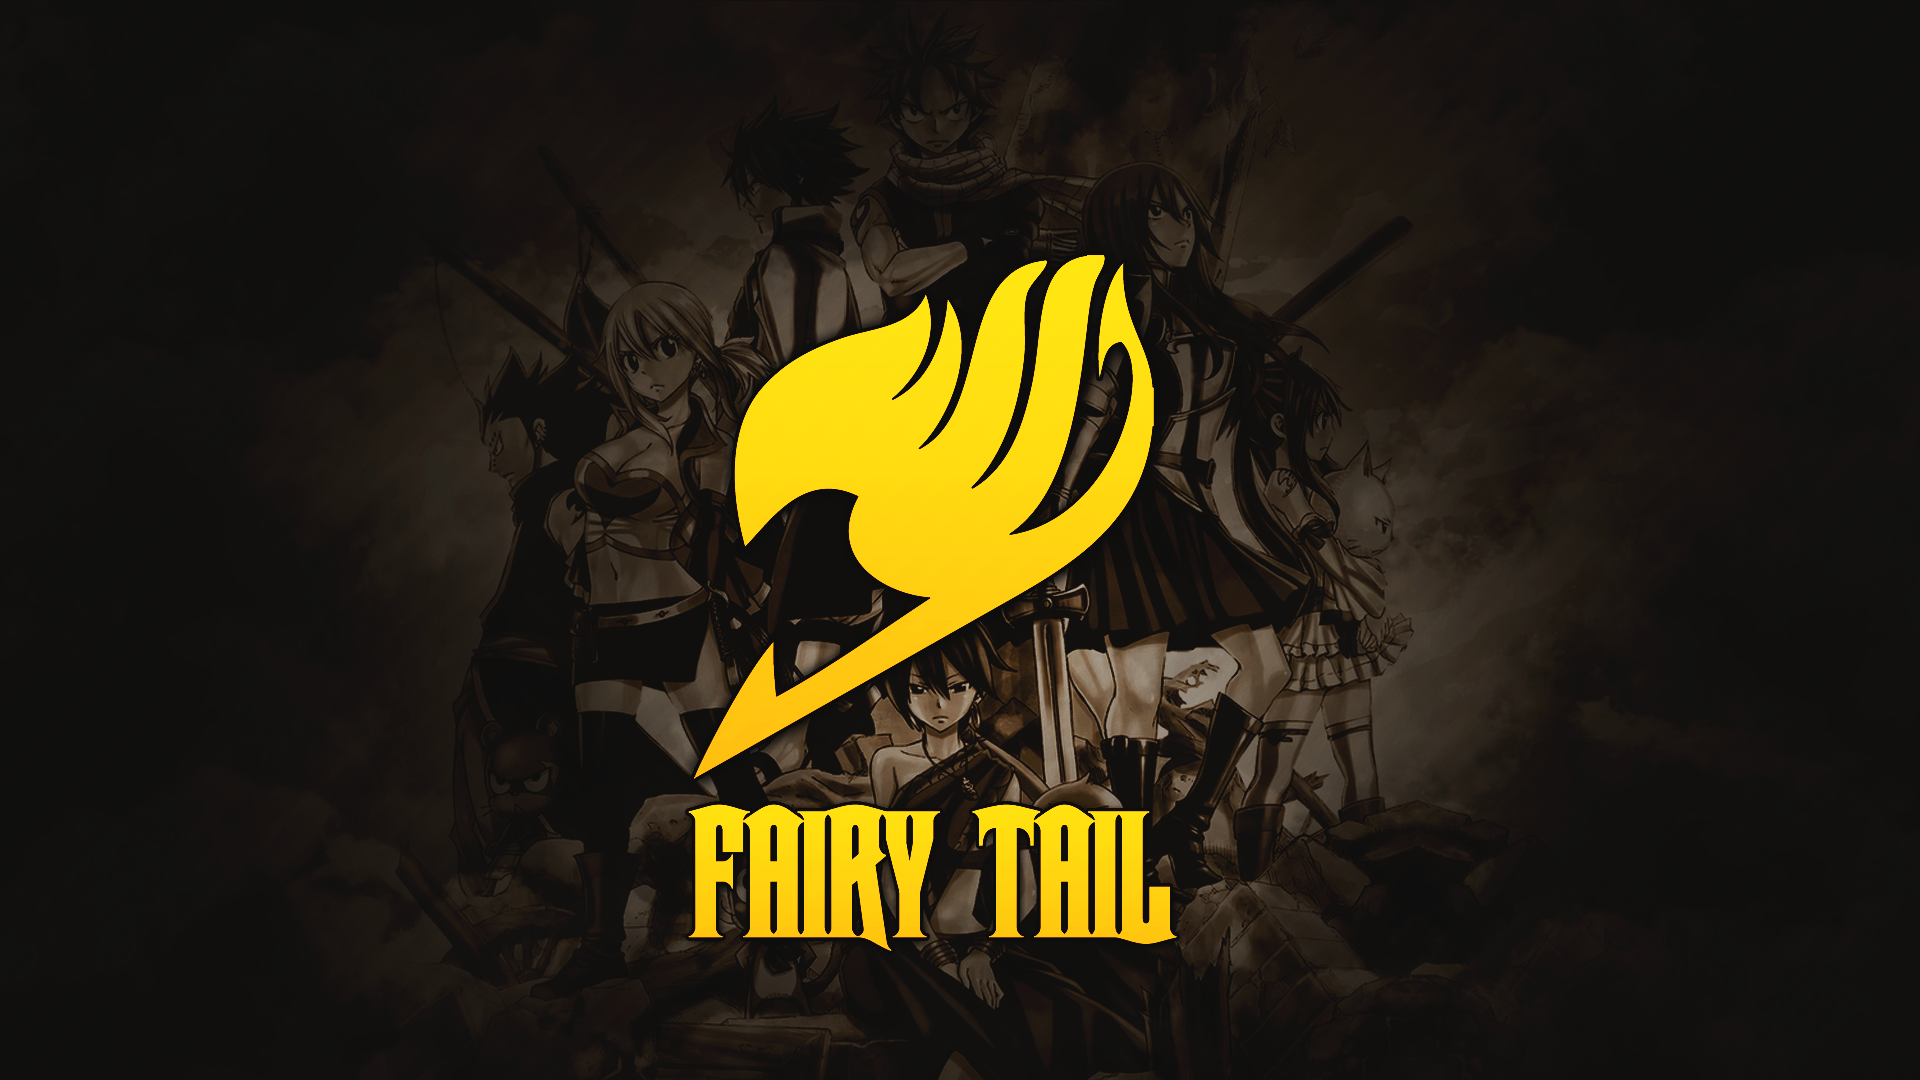 Fairy tail emblem wallpapers 33 wallpapers hd wallpapers - Fairy tail emblem ...